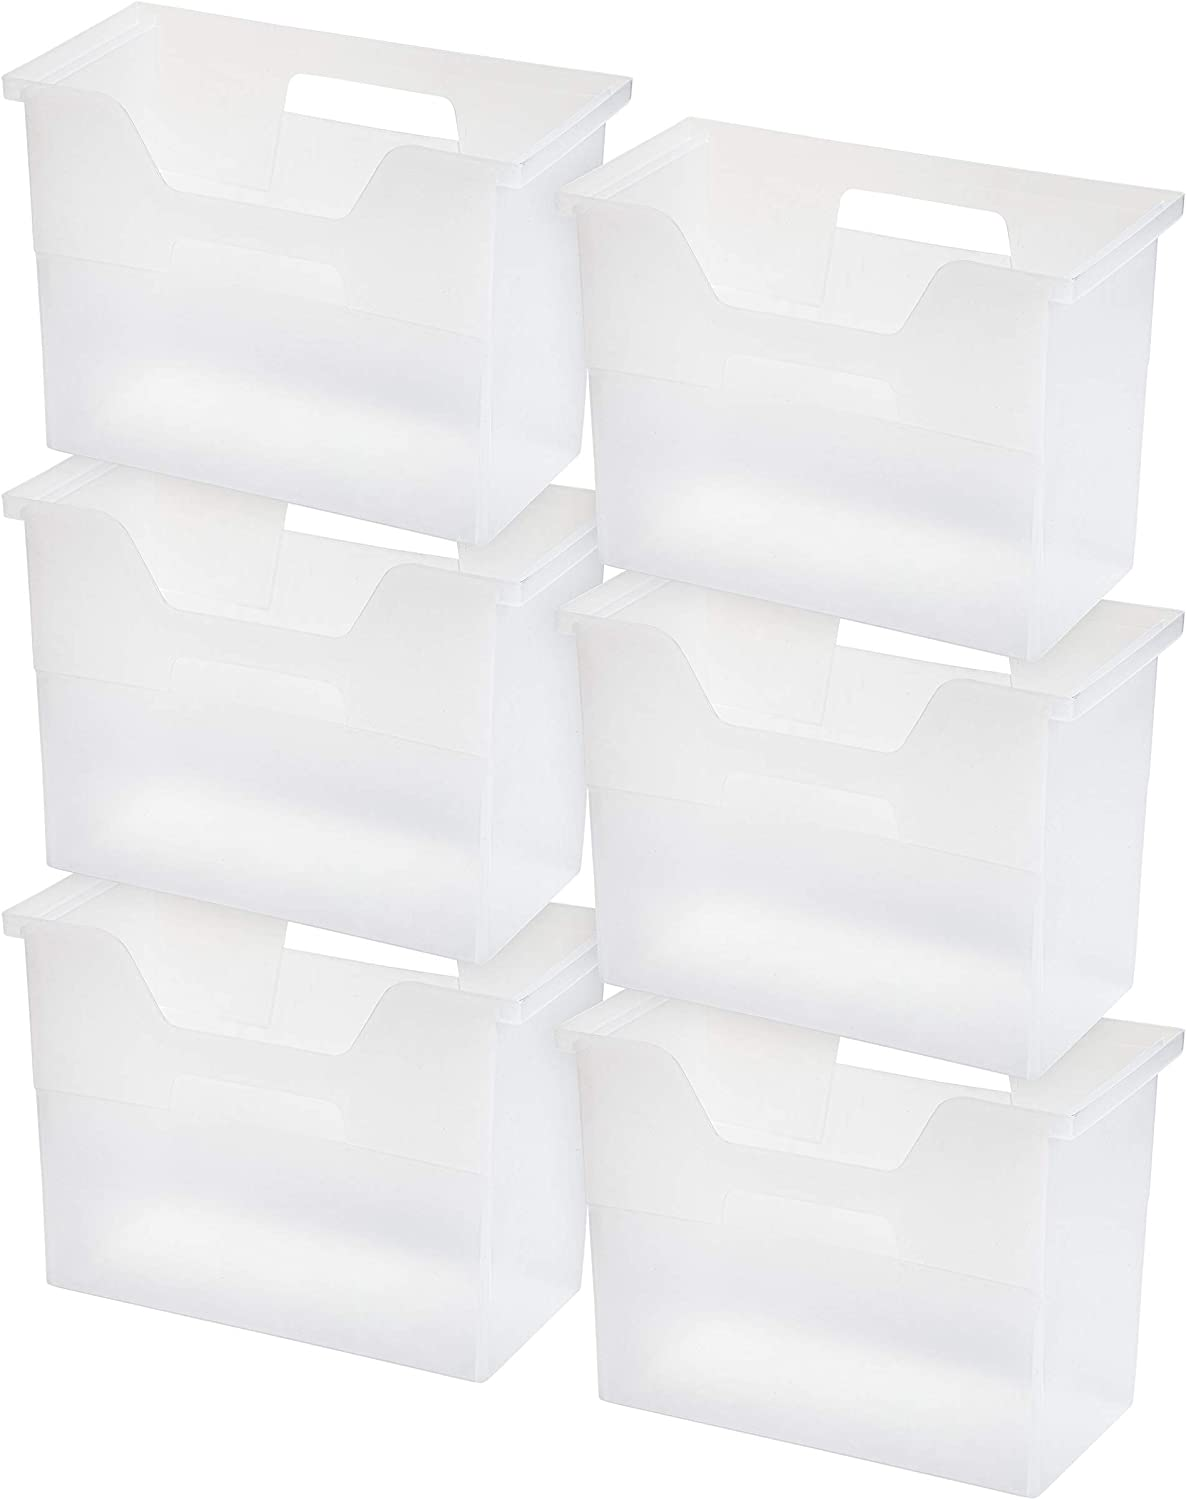 IRIS USA, Inc. OTFB-M Desktop File Box, Medium, Clear